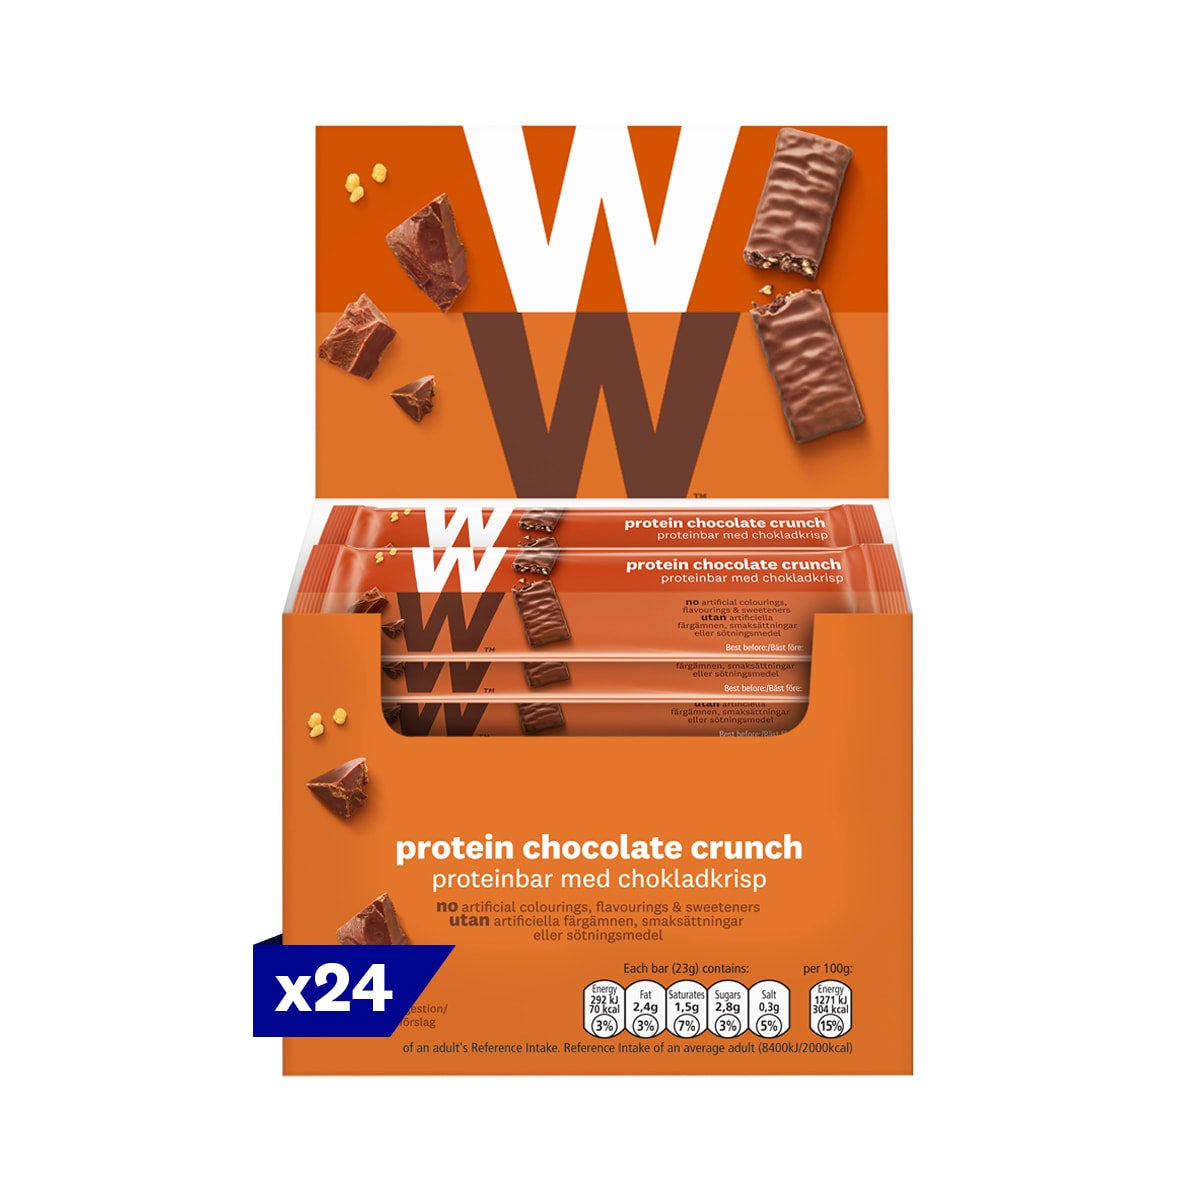 Box of 24, WW Protein Chocolate Crunch Bar, wrapped in velvety milk chocolate, 2 SmartPoints values, high in protein, suitable for vegetarians